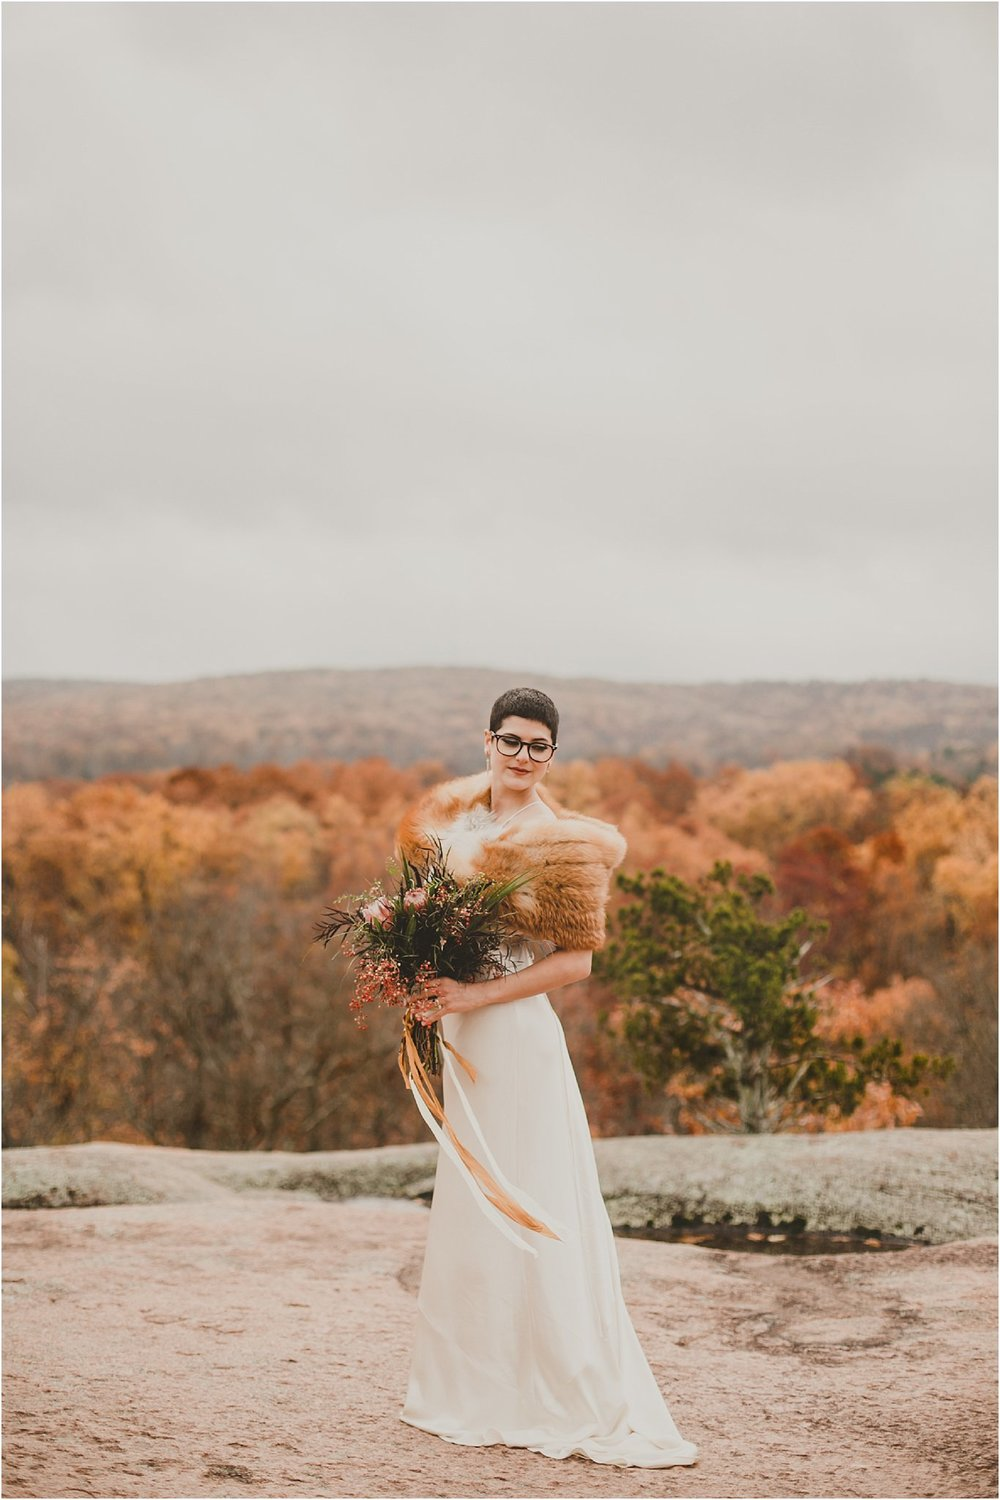 PattengalePhotography_boho_AdventureBride_StyledShoot_ElephantRockStatePark_StLouis_Bridal_Wedding_Wes&Jess__0009.jpg